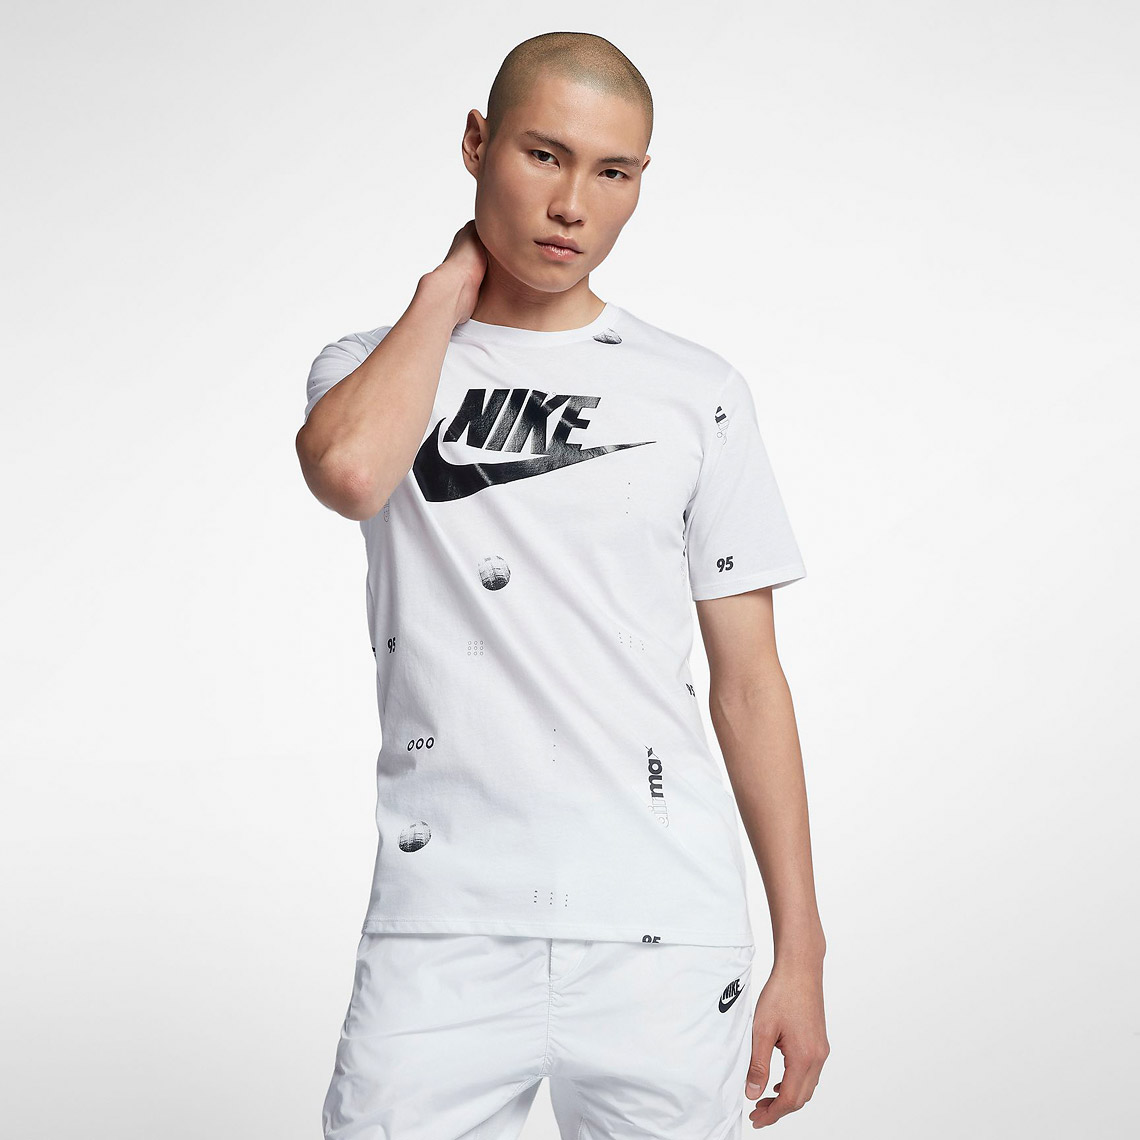 sportswear-air-max-mens-t-shirt-8wMNkzw